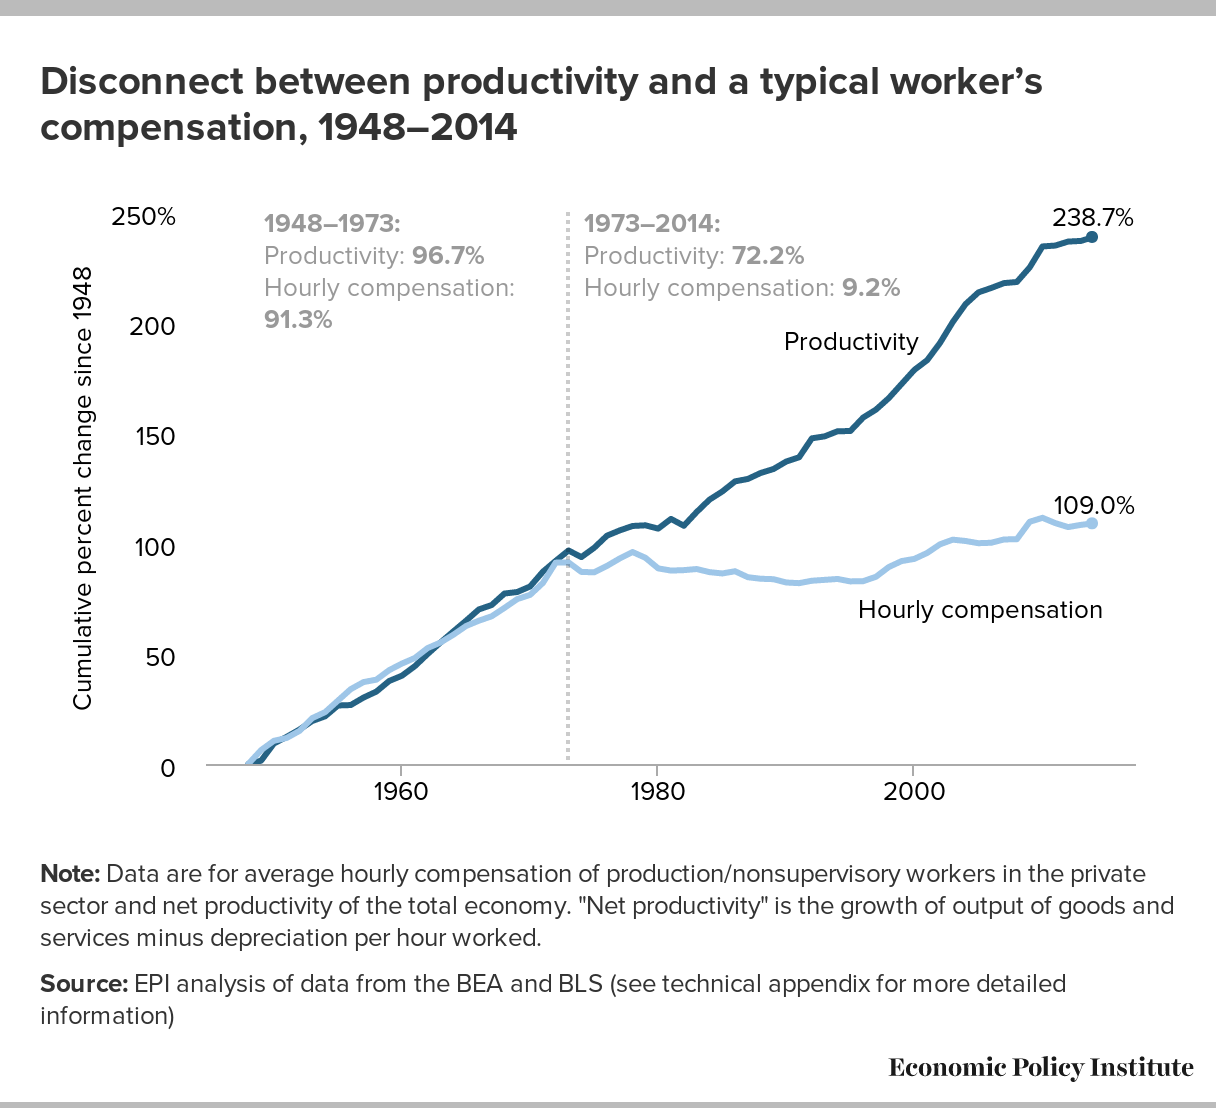 productivity and typical worker's compensation